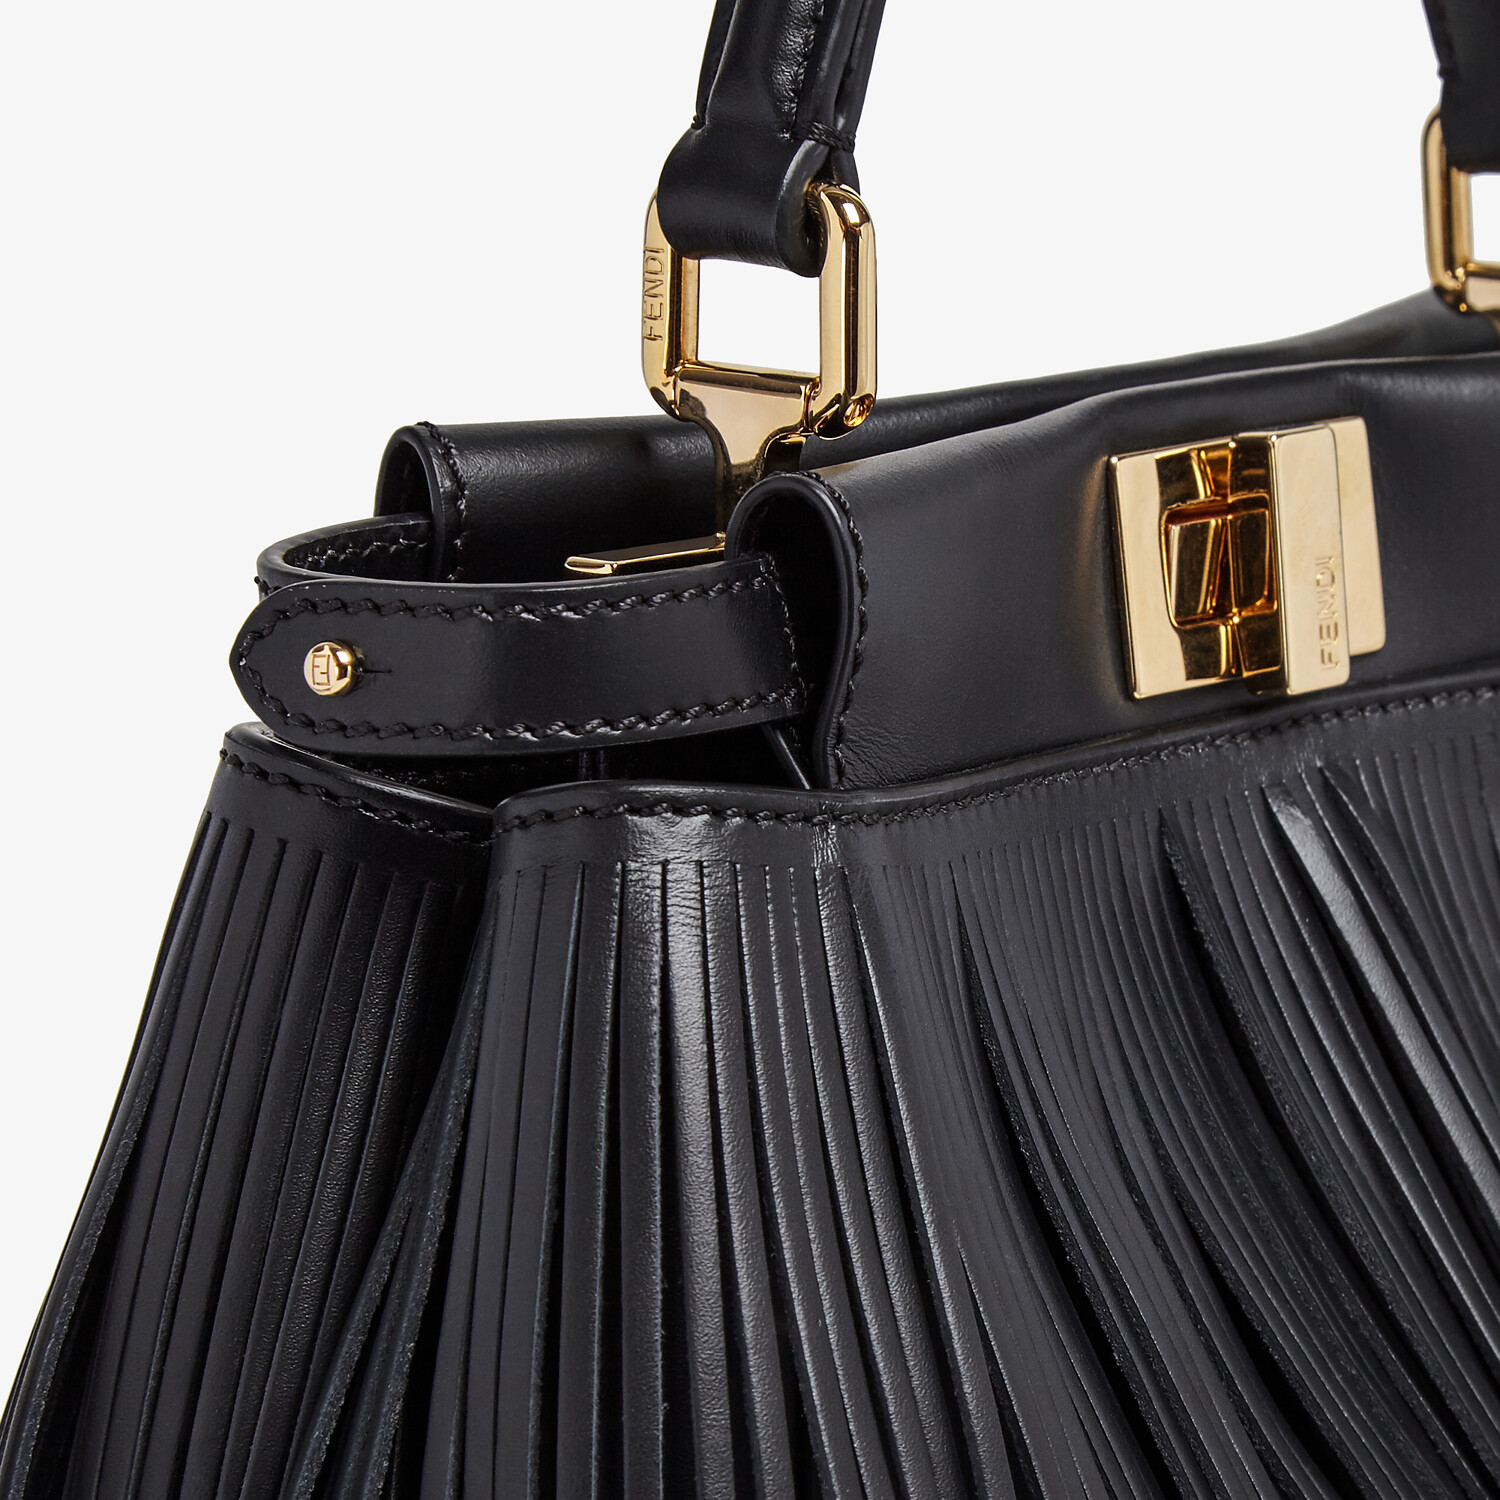 FENDI PEEKABOO ICONIC MINI - Black leather bag with fringes - view 6 detail